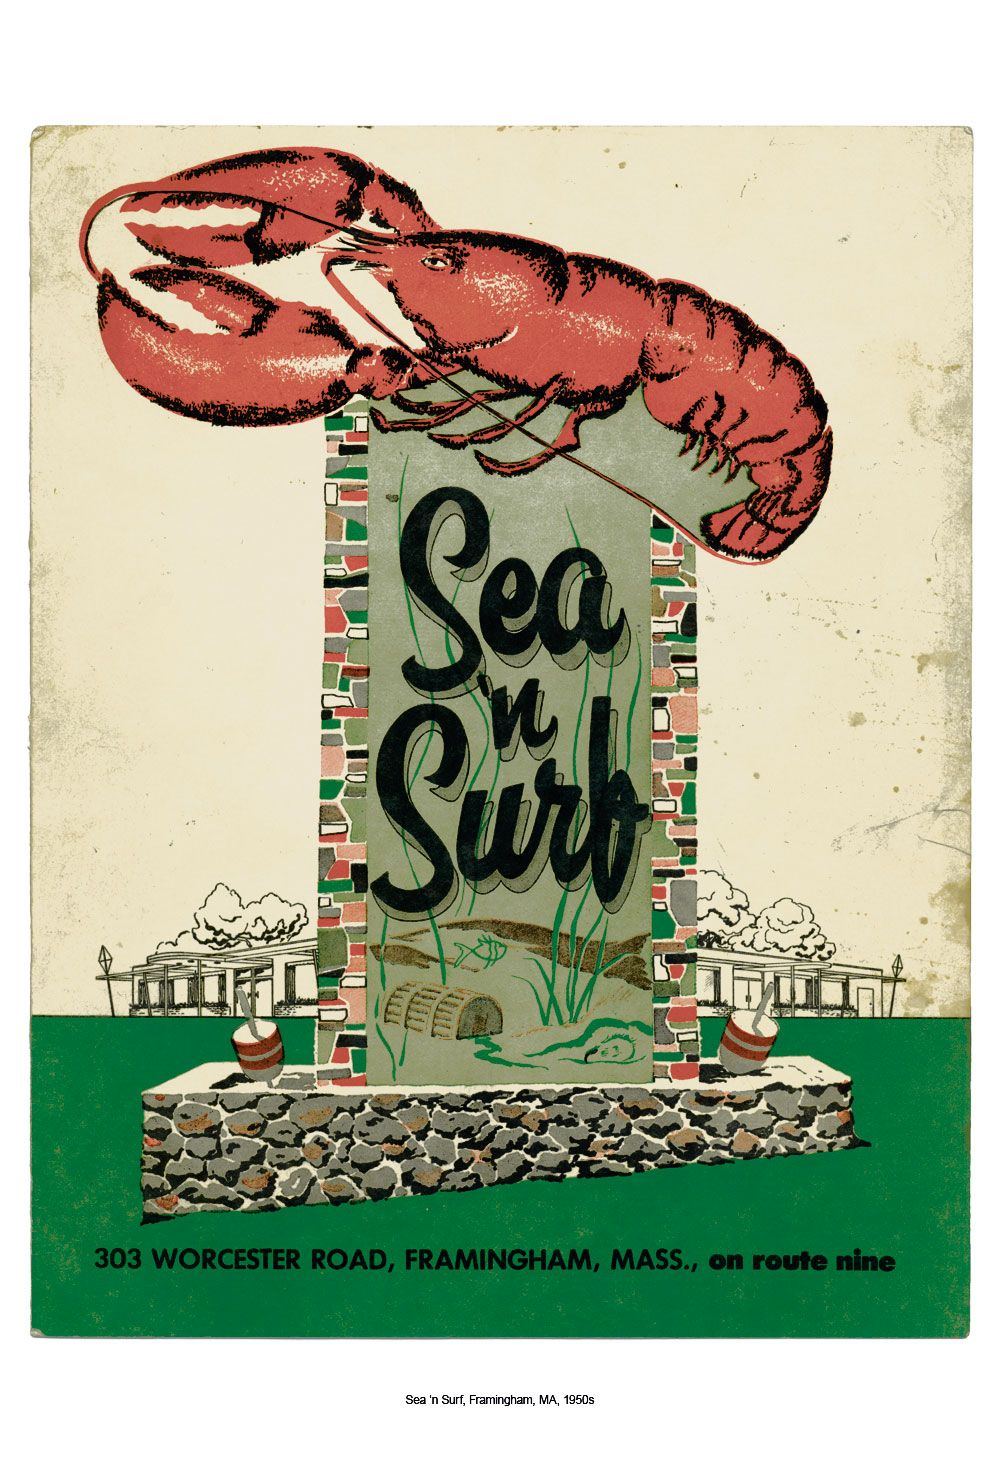 Sea N Surf Framingham Mass This Was My First Job As A Relish Girl It Was Very Nice Restaurant Franklin Park Zoo Massachusetts Worcester